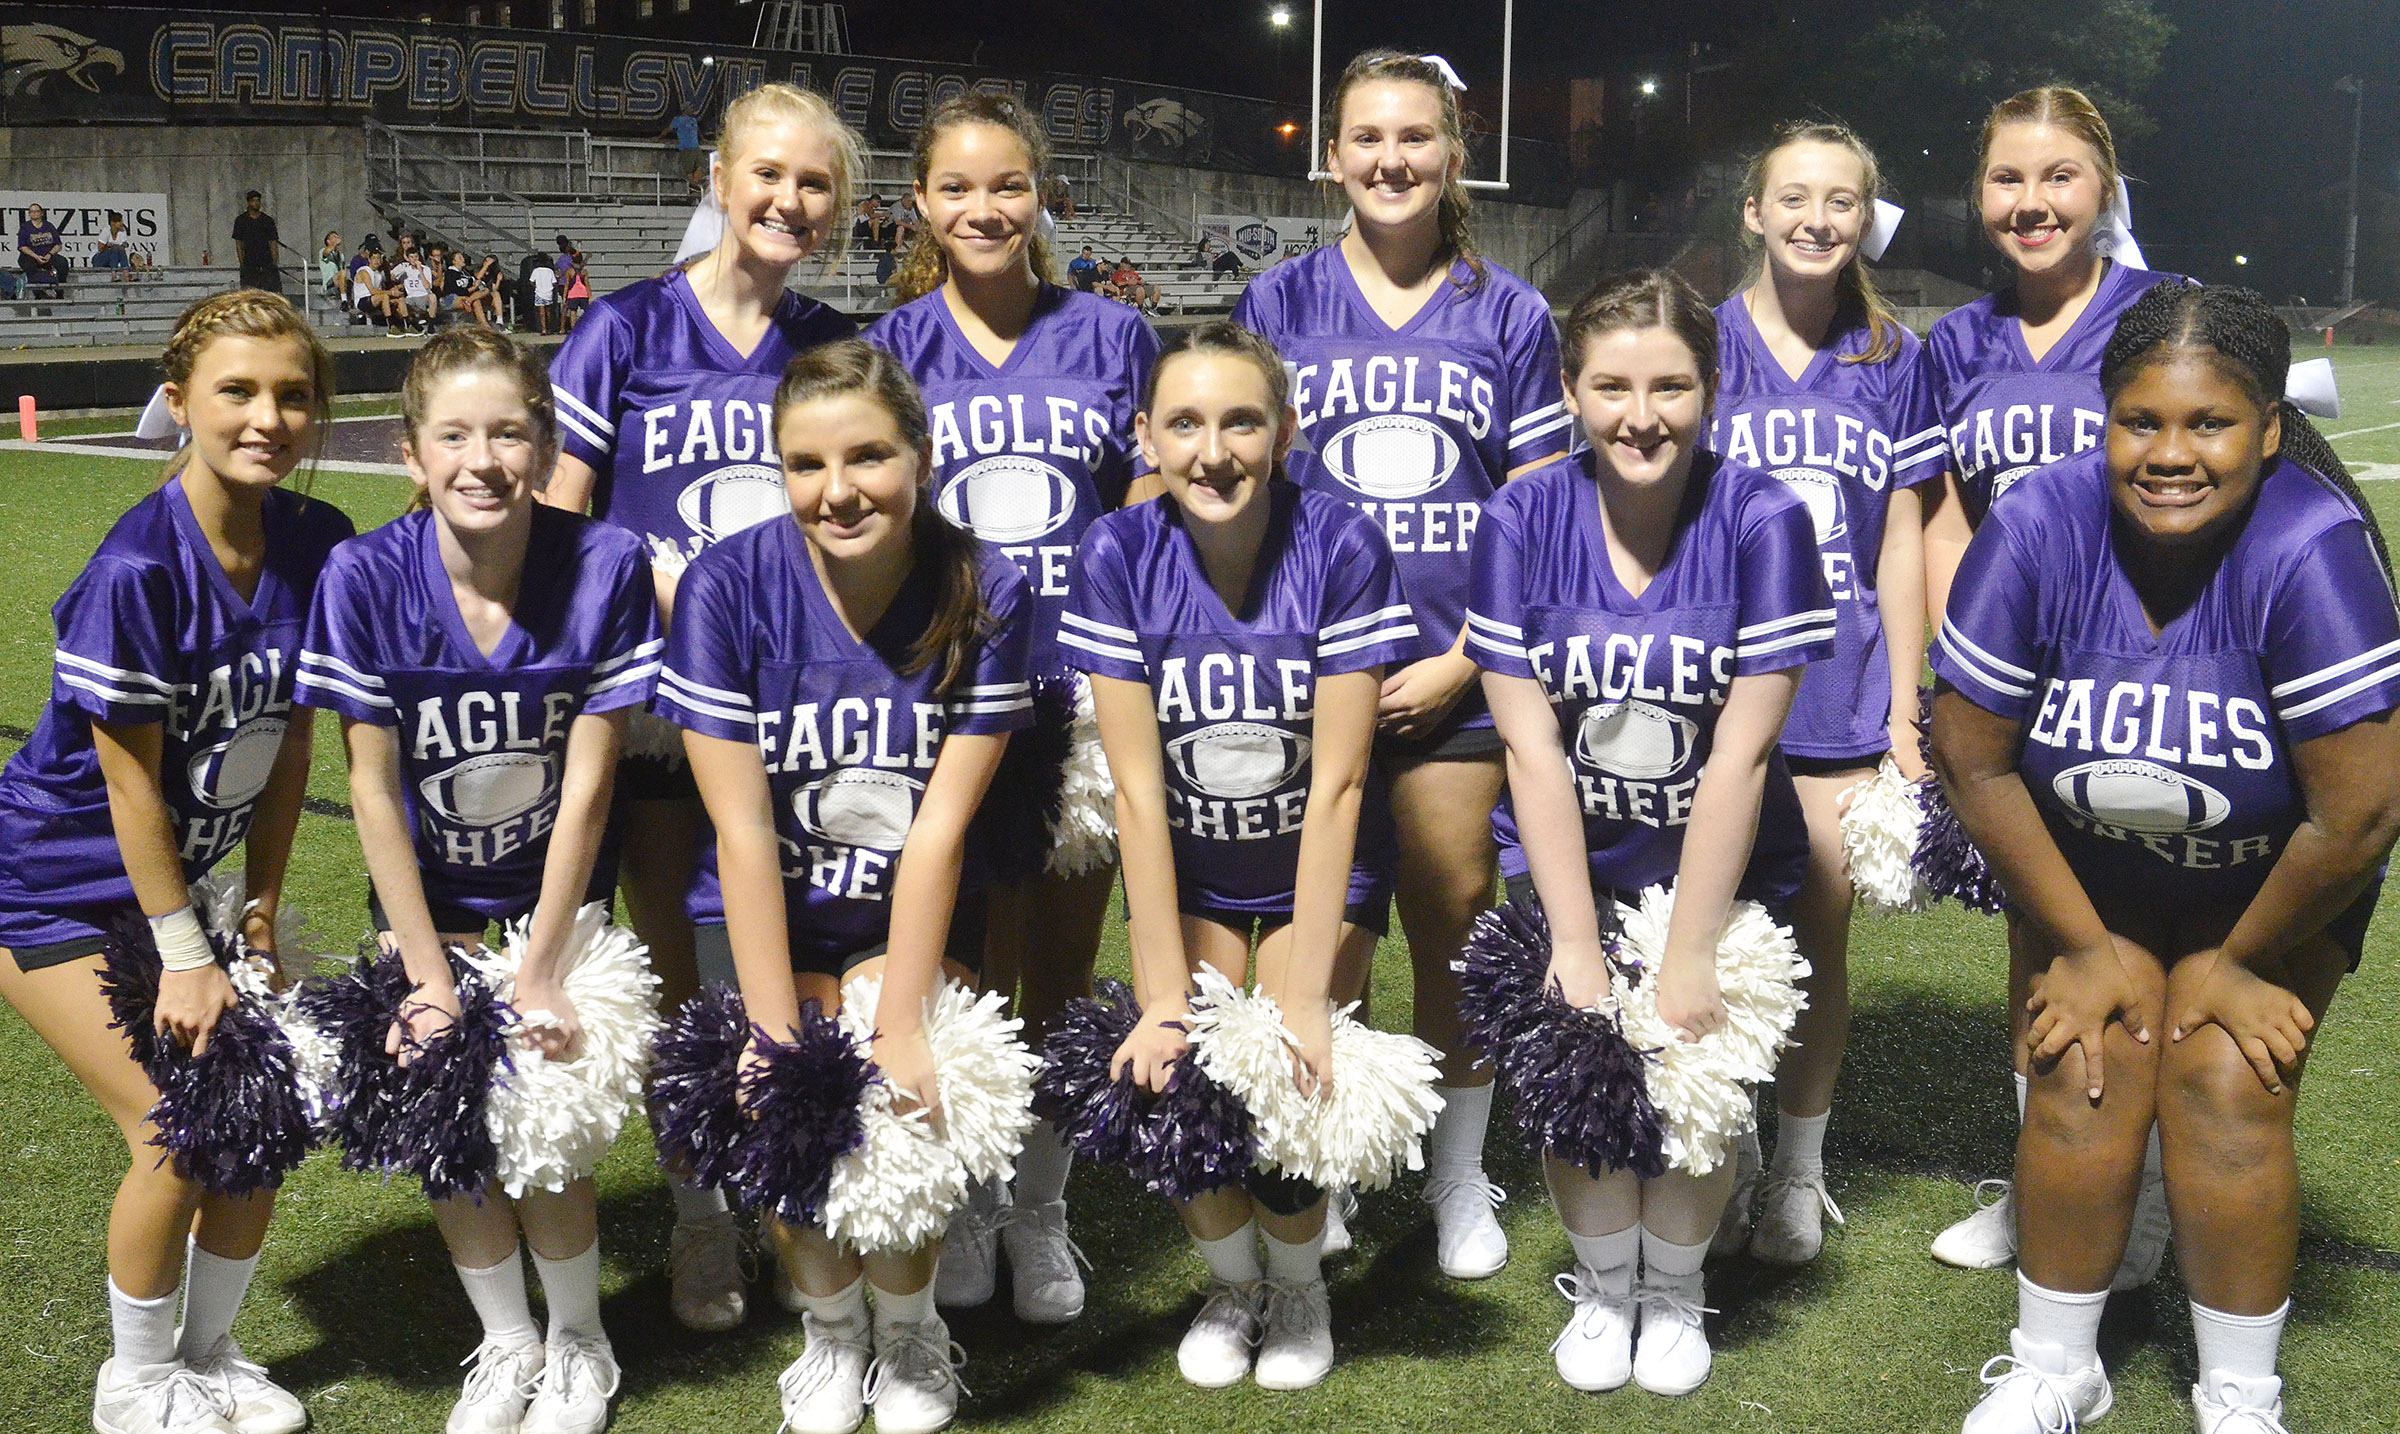 CHS cheerleaders cheer for the Eagles. From left, front, are freshman Carly Adams, sophomores Gracyne Hash, Sydney Wilson, Zoe McAninch, Alli Wilson and Jakyia Mitchell. Back, sophomores Isabella Osborne, Taliyah Hazelwood and Haley Morris, junior Caleigh Bright and sophomore Lauryn Agathen.